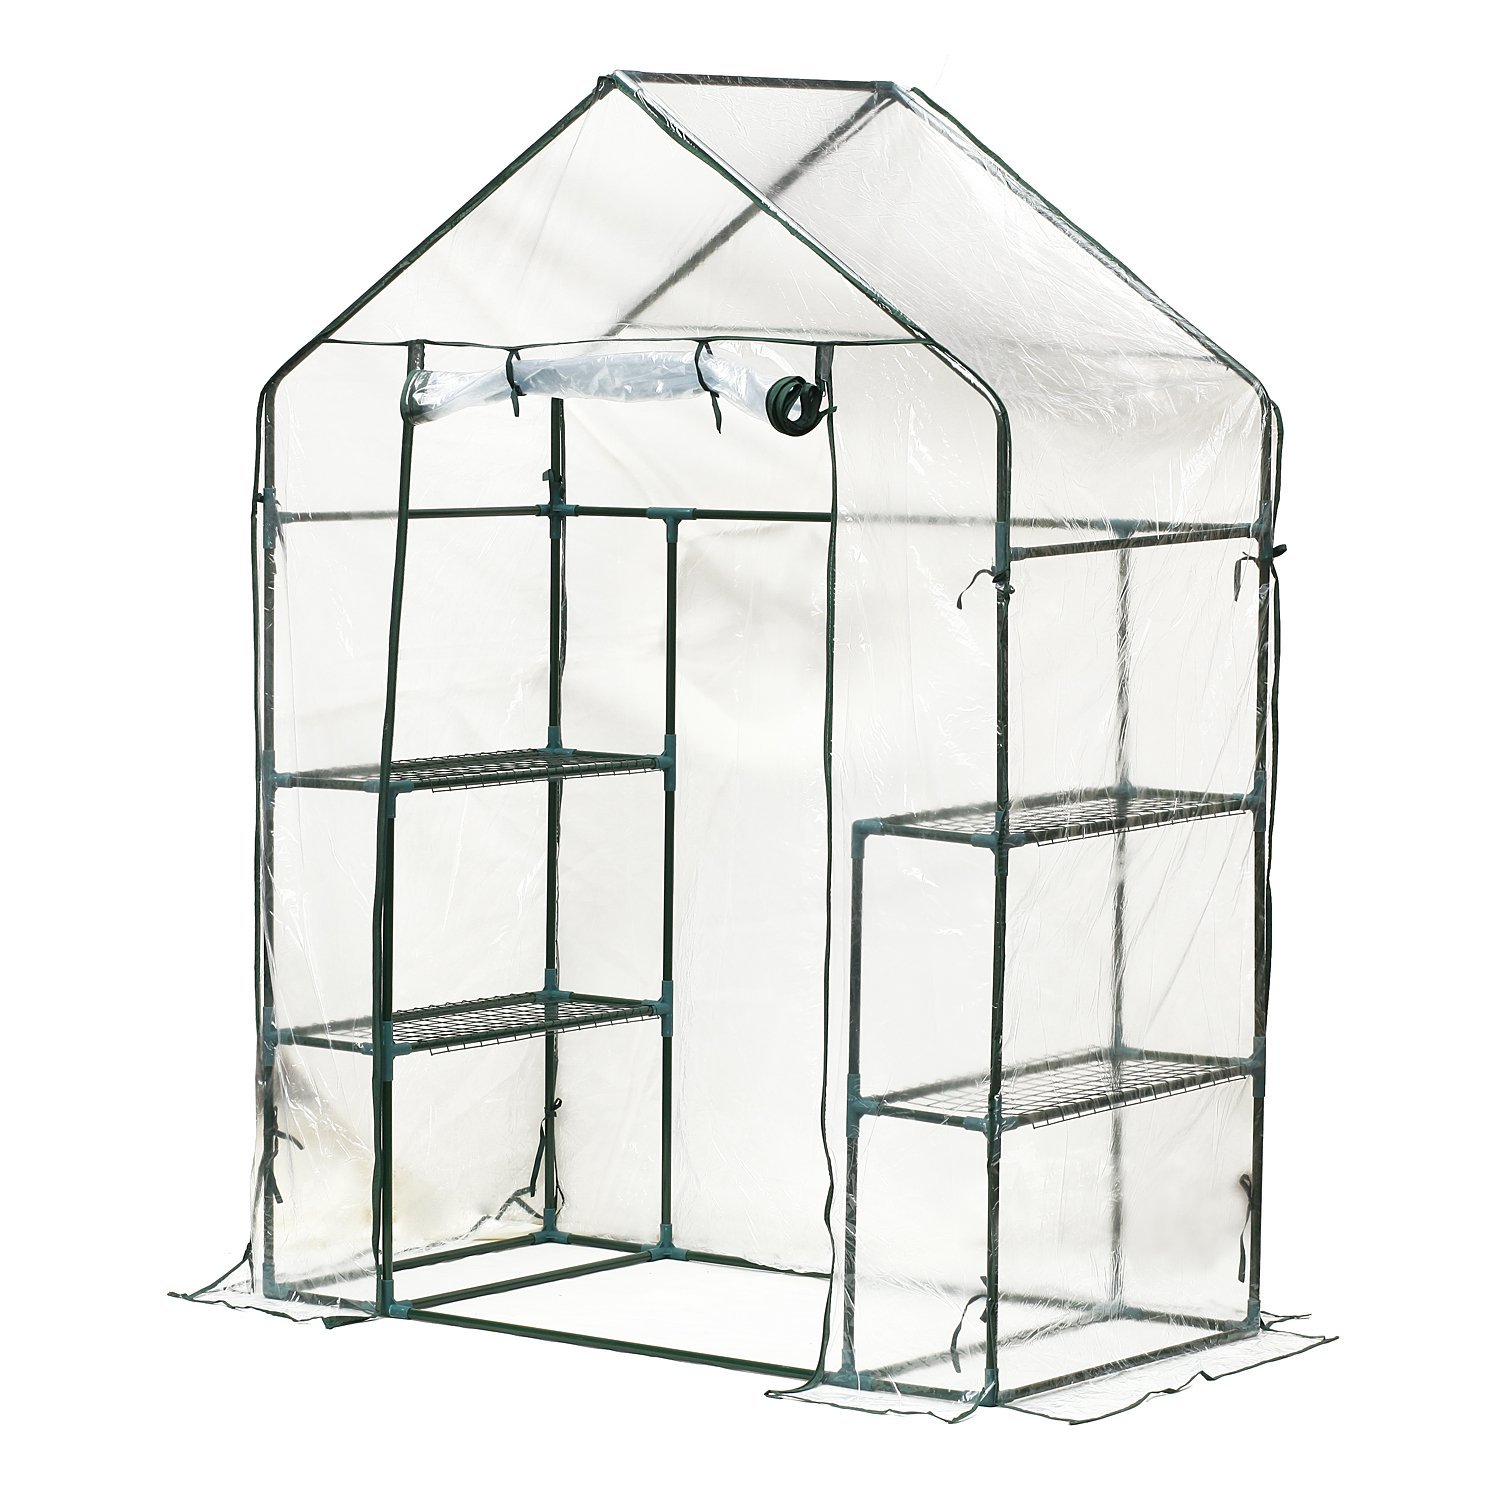 Outsunny 4.5W x 2.5D ft. Portable Outdoor Walk-In Greenhouse with 3 Tier Storage Shelves